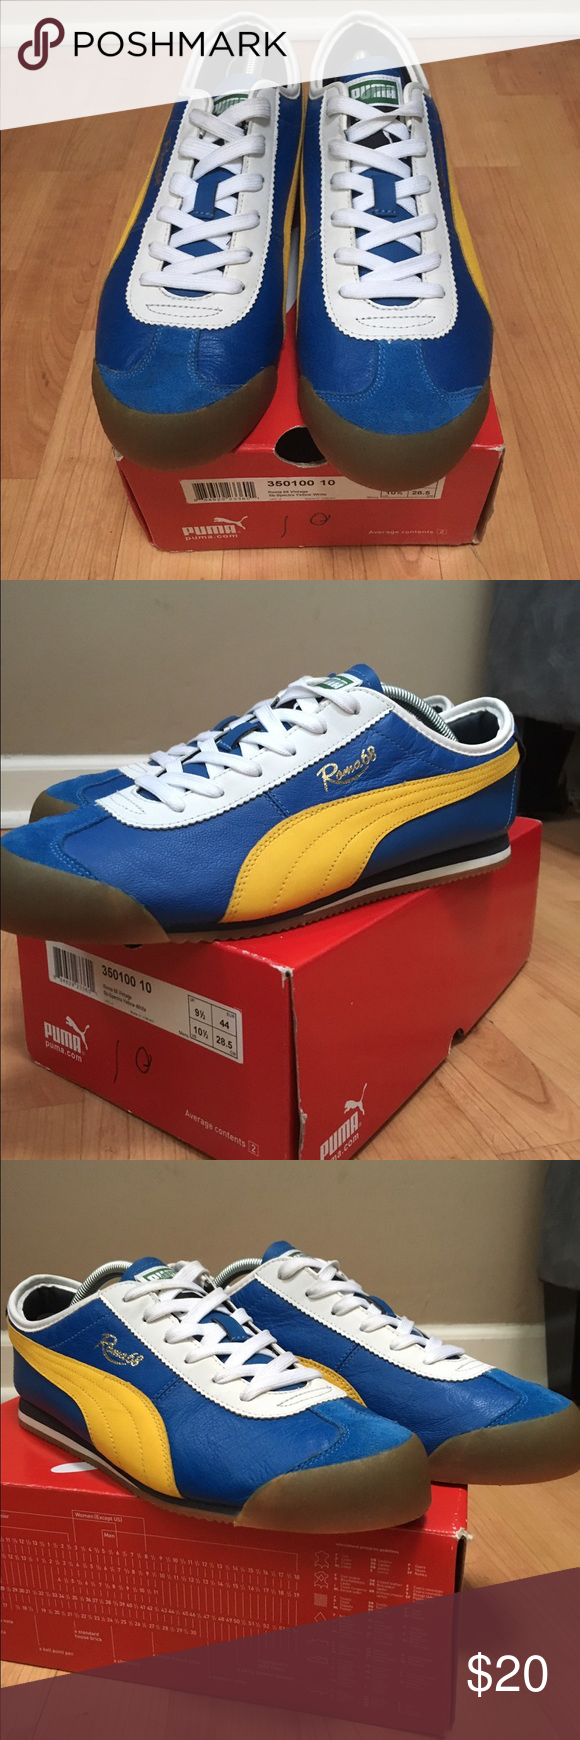 Puma Roma 68 Vintage Very good condition Puma Roma sneakers. No scuffs or damage. Puma Shoes Sneakers